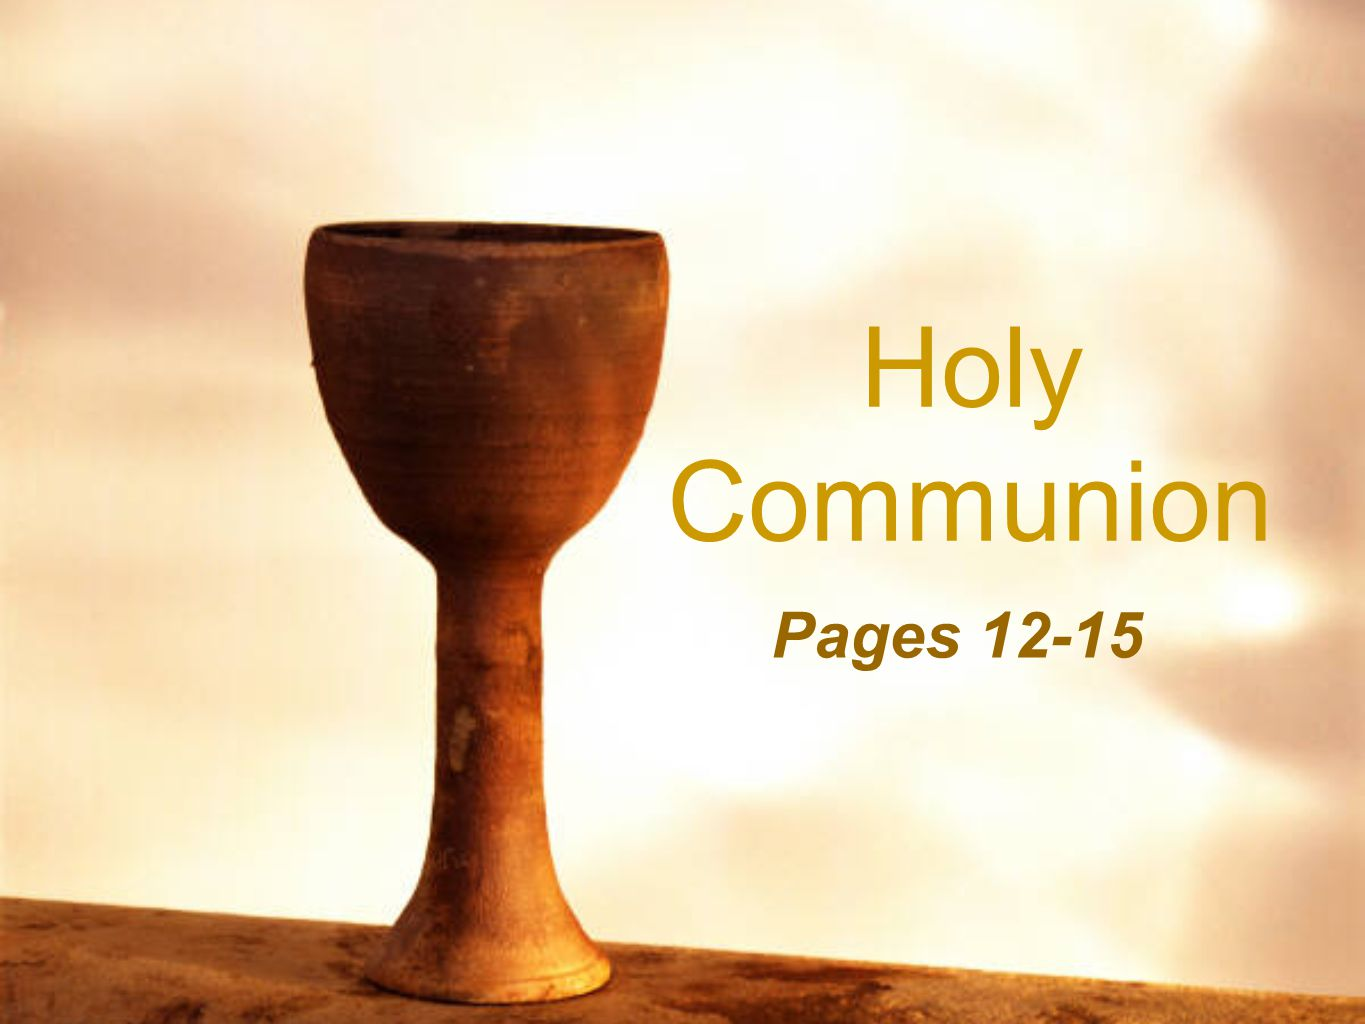 Holy Communion Pages 12-15